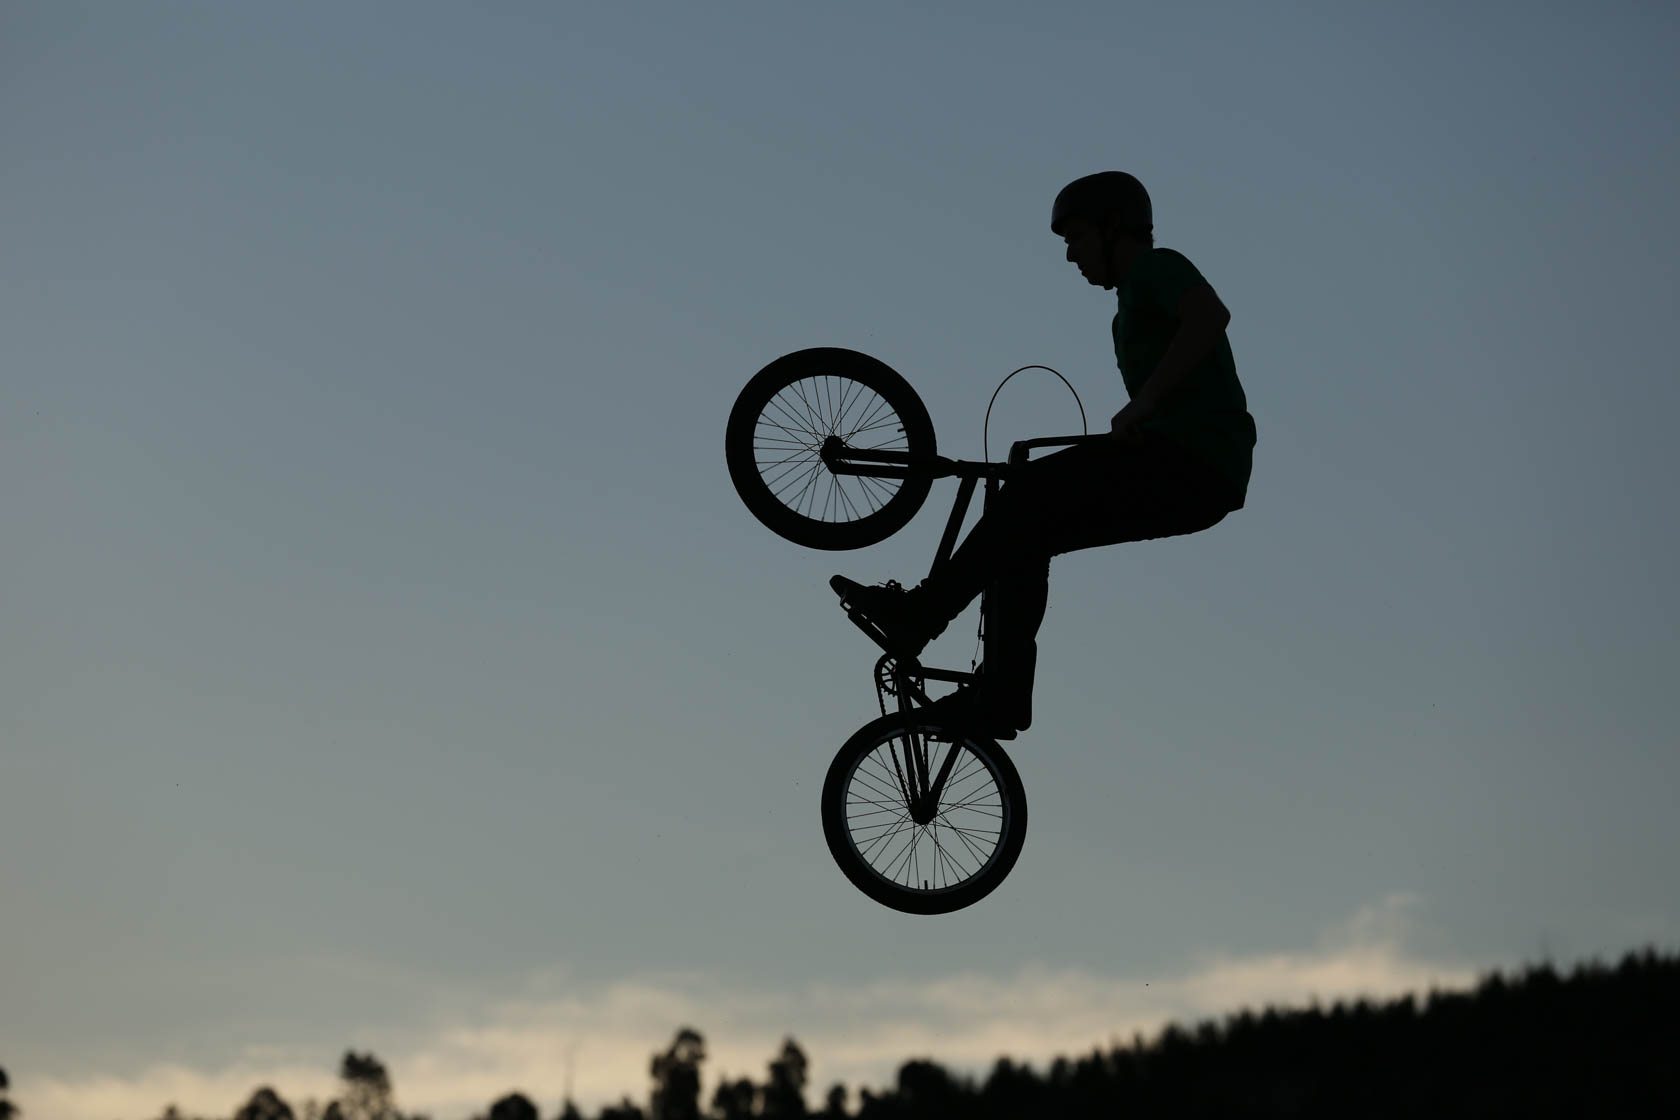 Silhouette of BMX rider taken on Canon EOS 5D Mark III DSLR camera